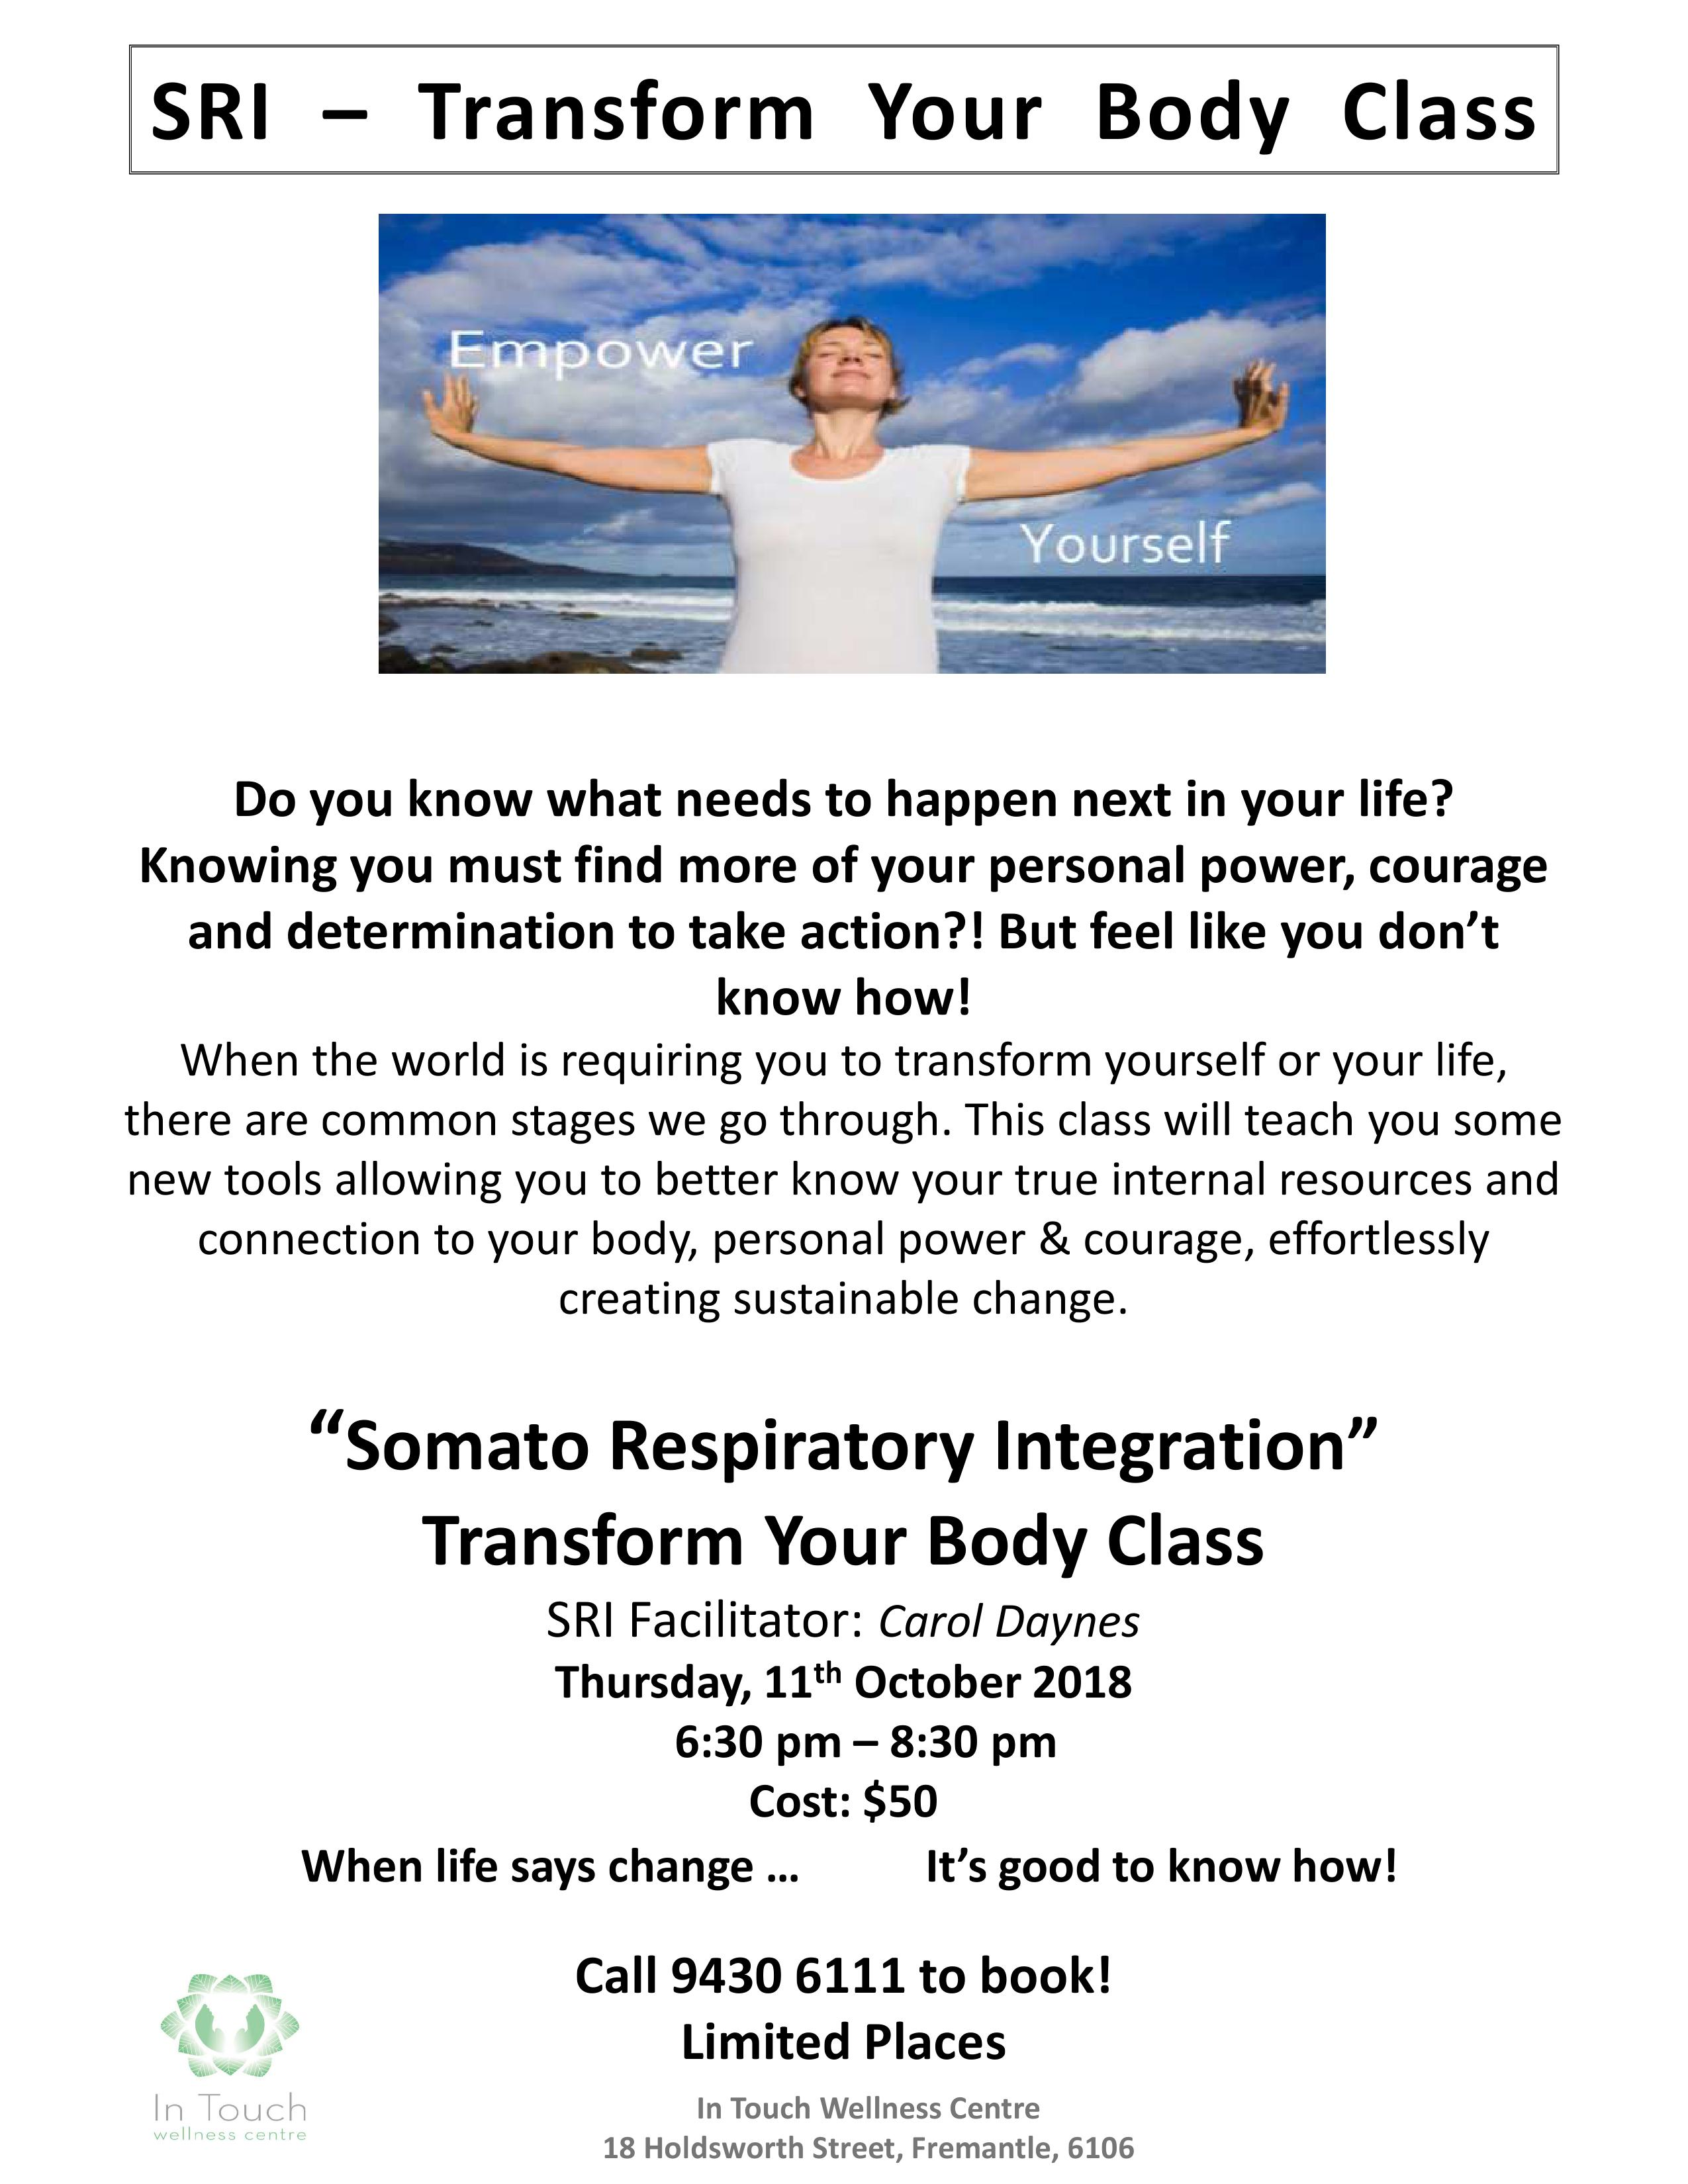 SRI Transform with your body 11 Oct 2018